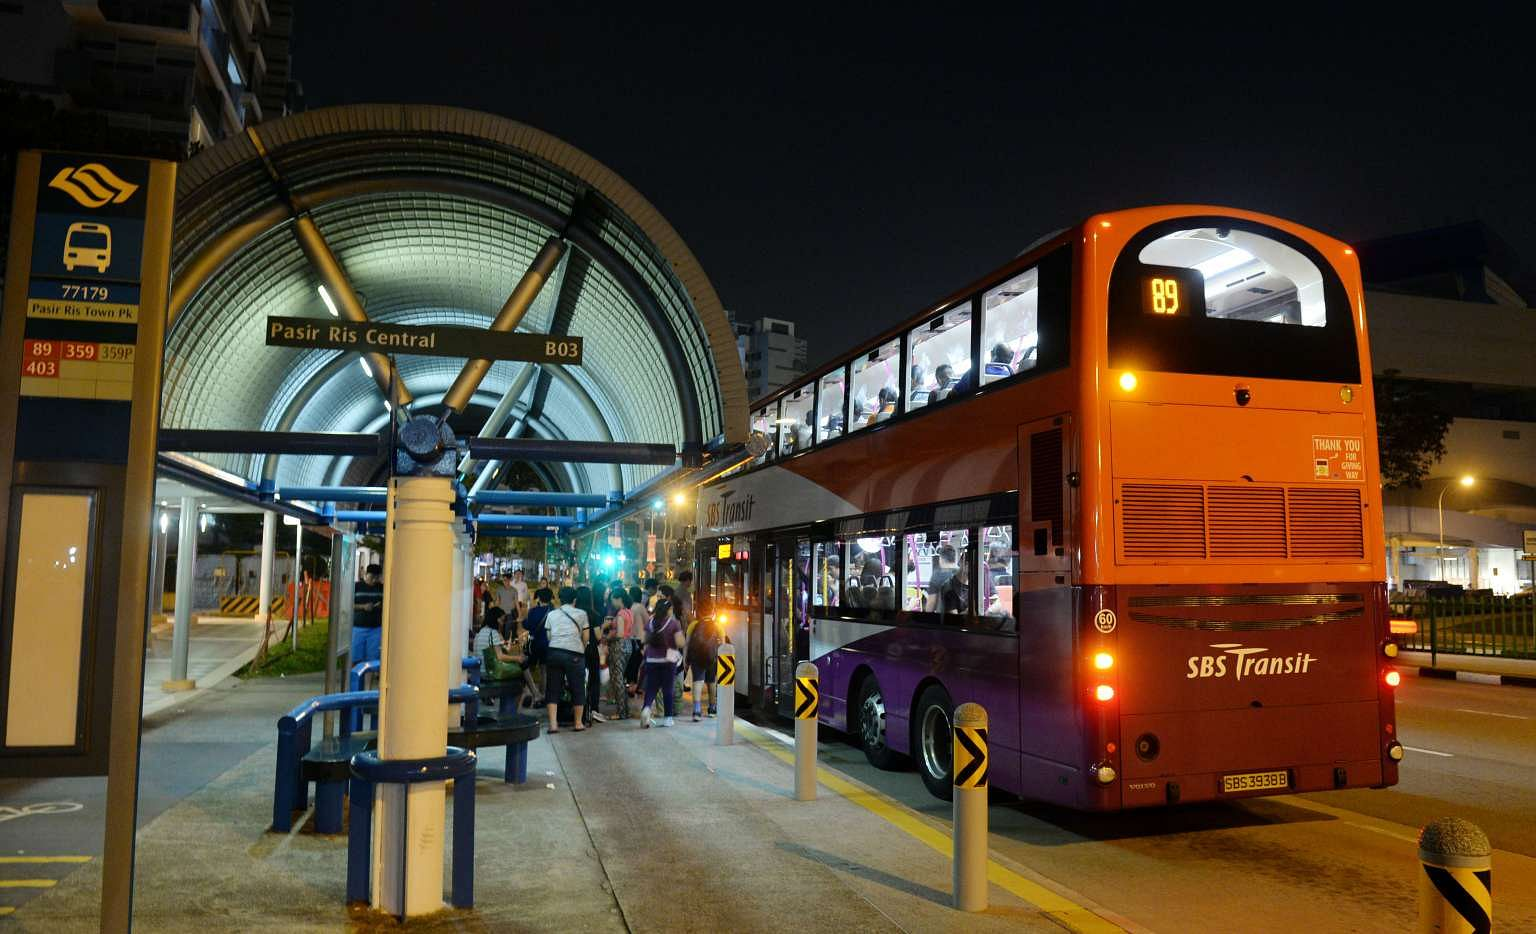 More than 750 new buses on the road as of end-2015